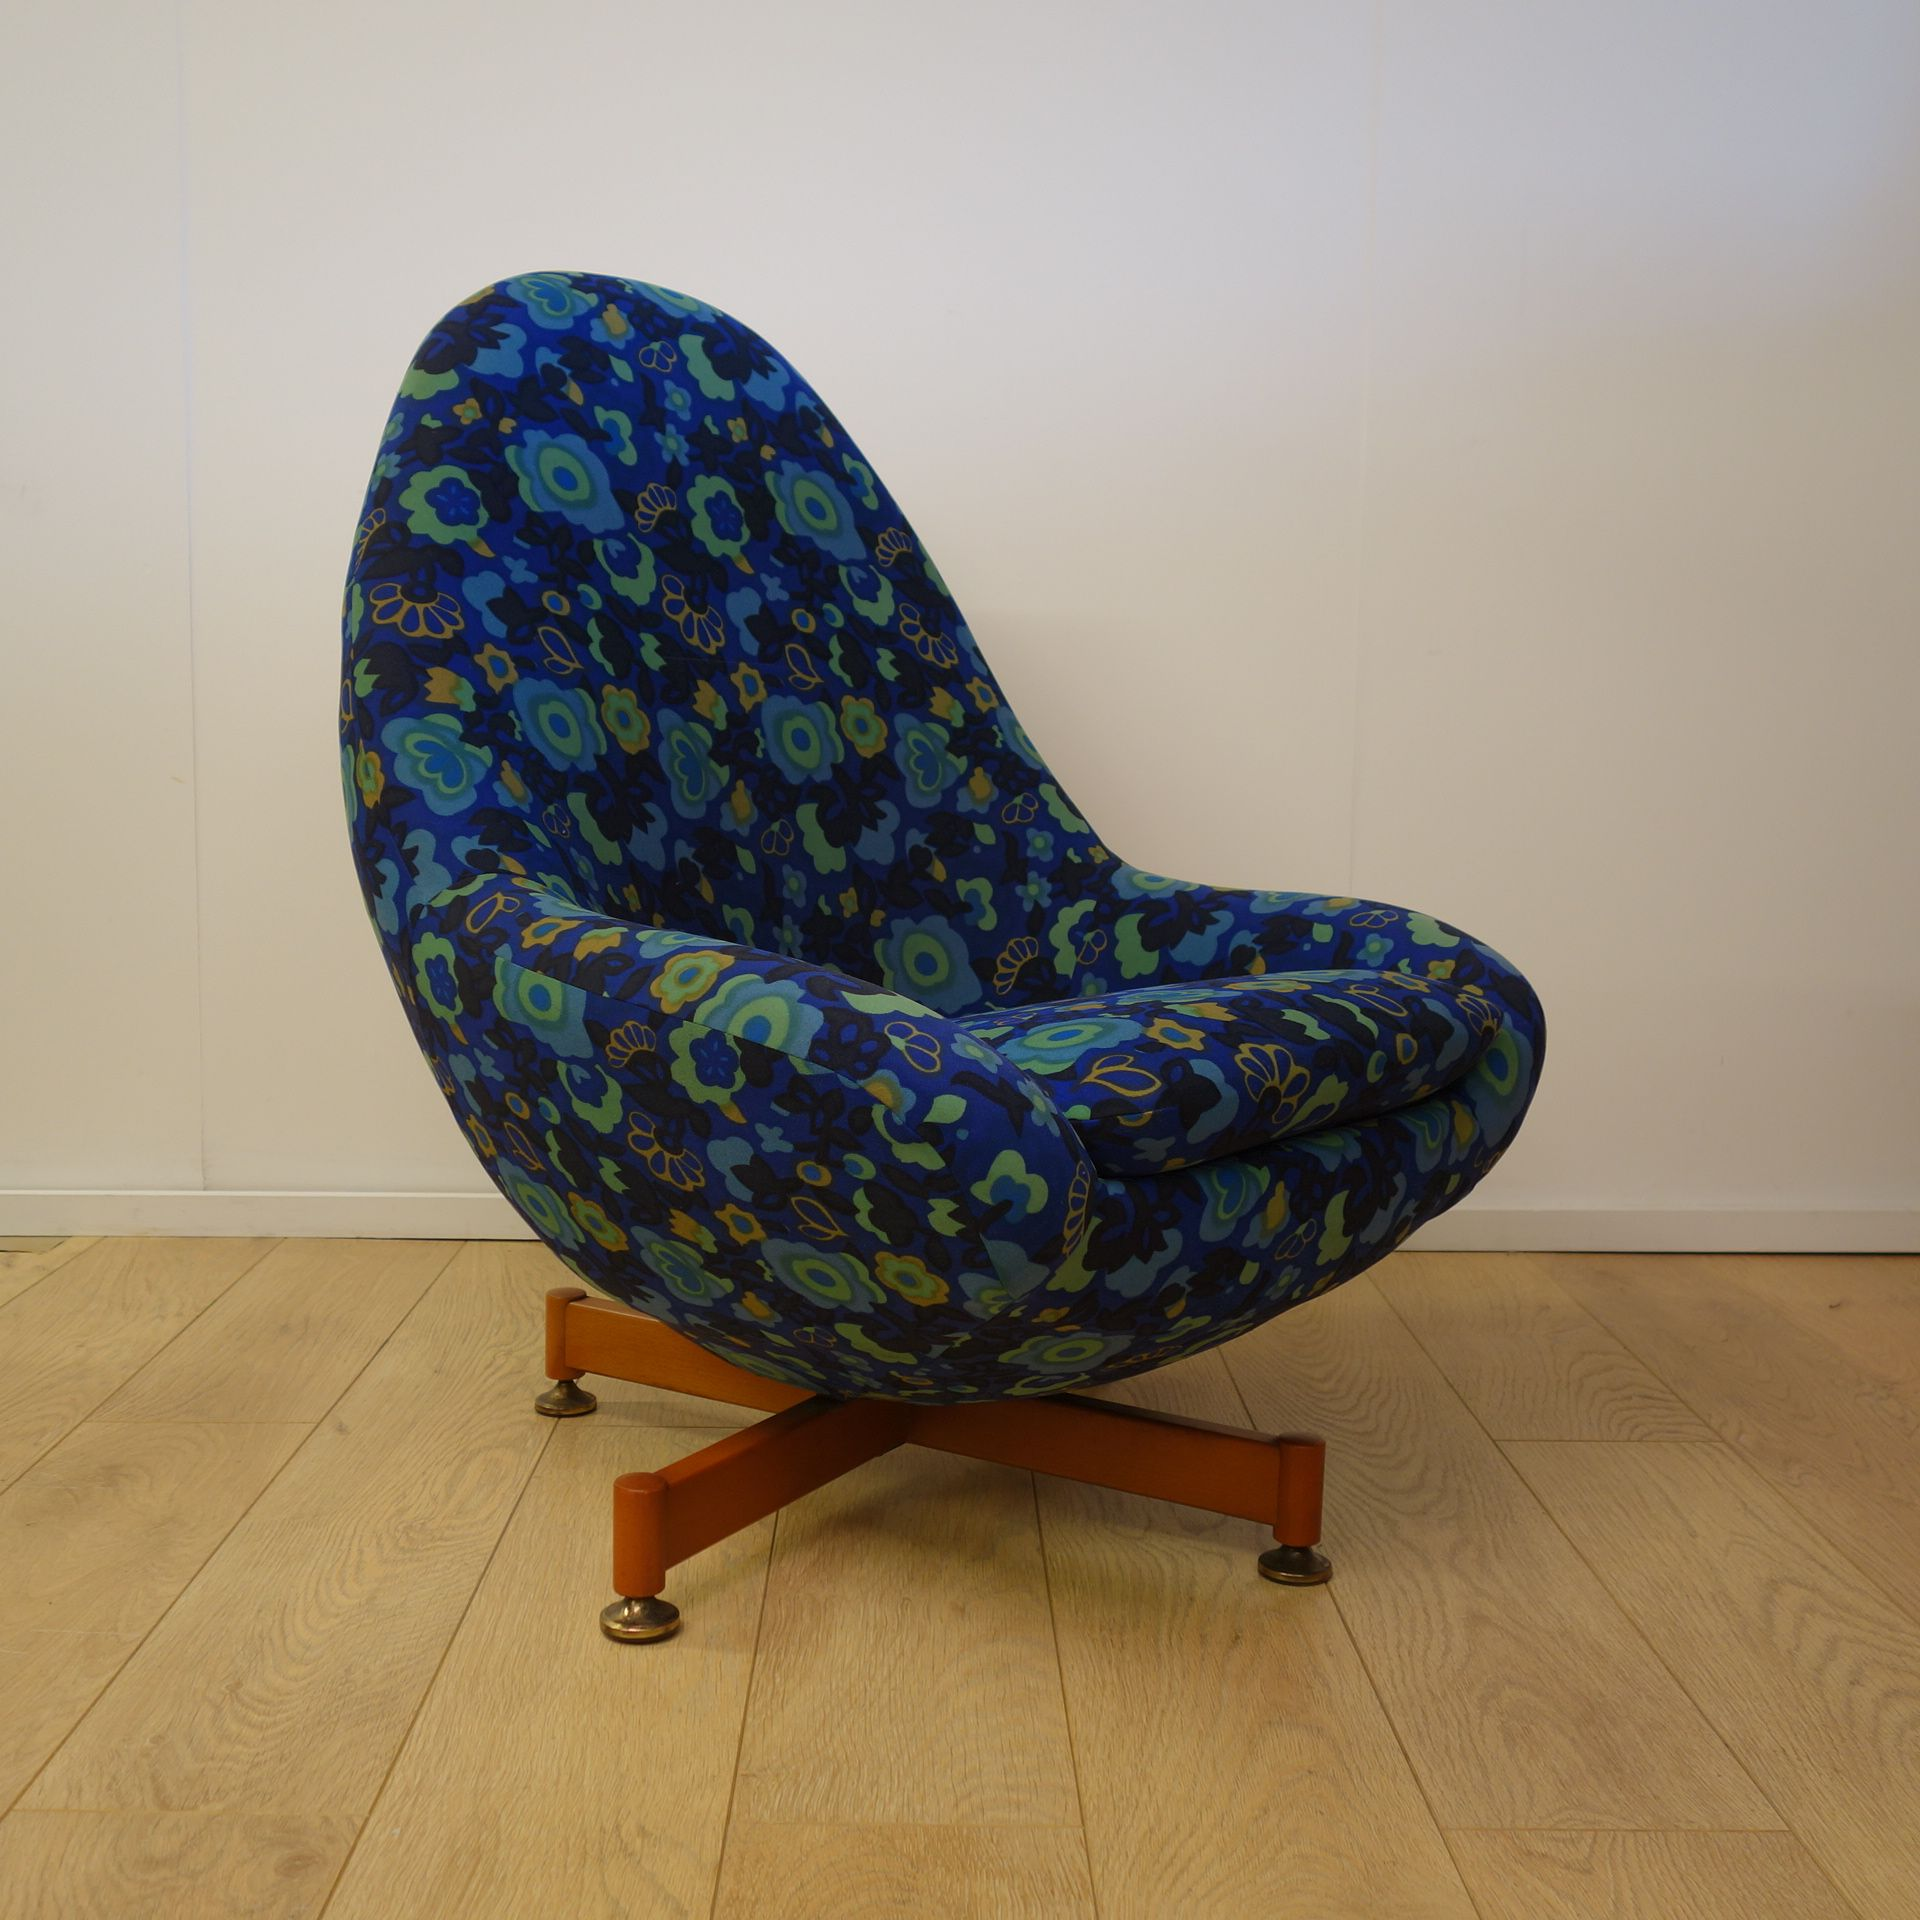 Reupholster Egg Chair 1960s Greaves And Thomas Egg Chair Chair Egg Chair Chair